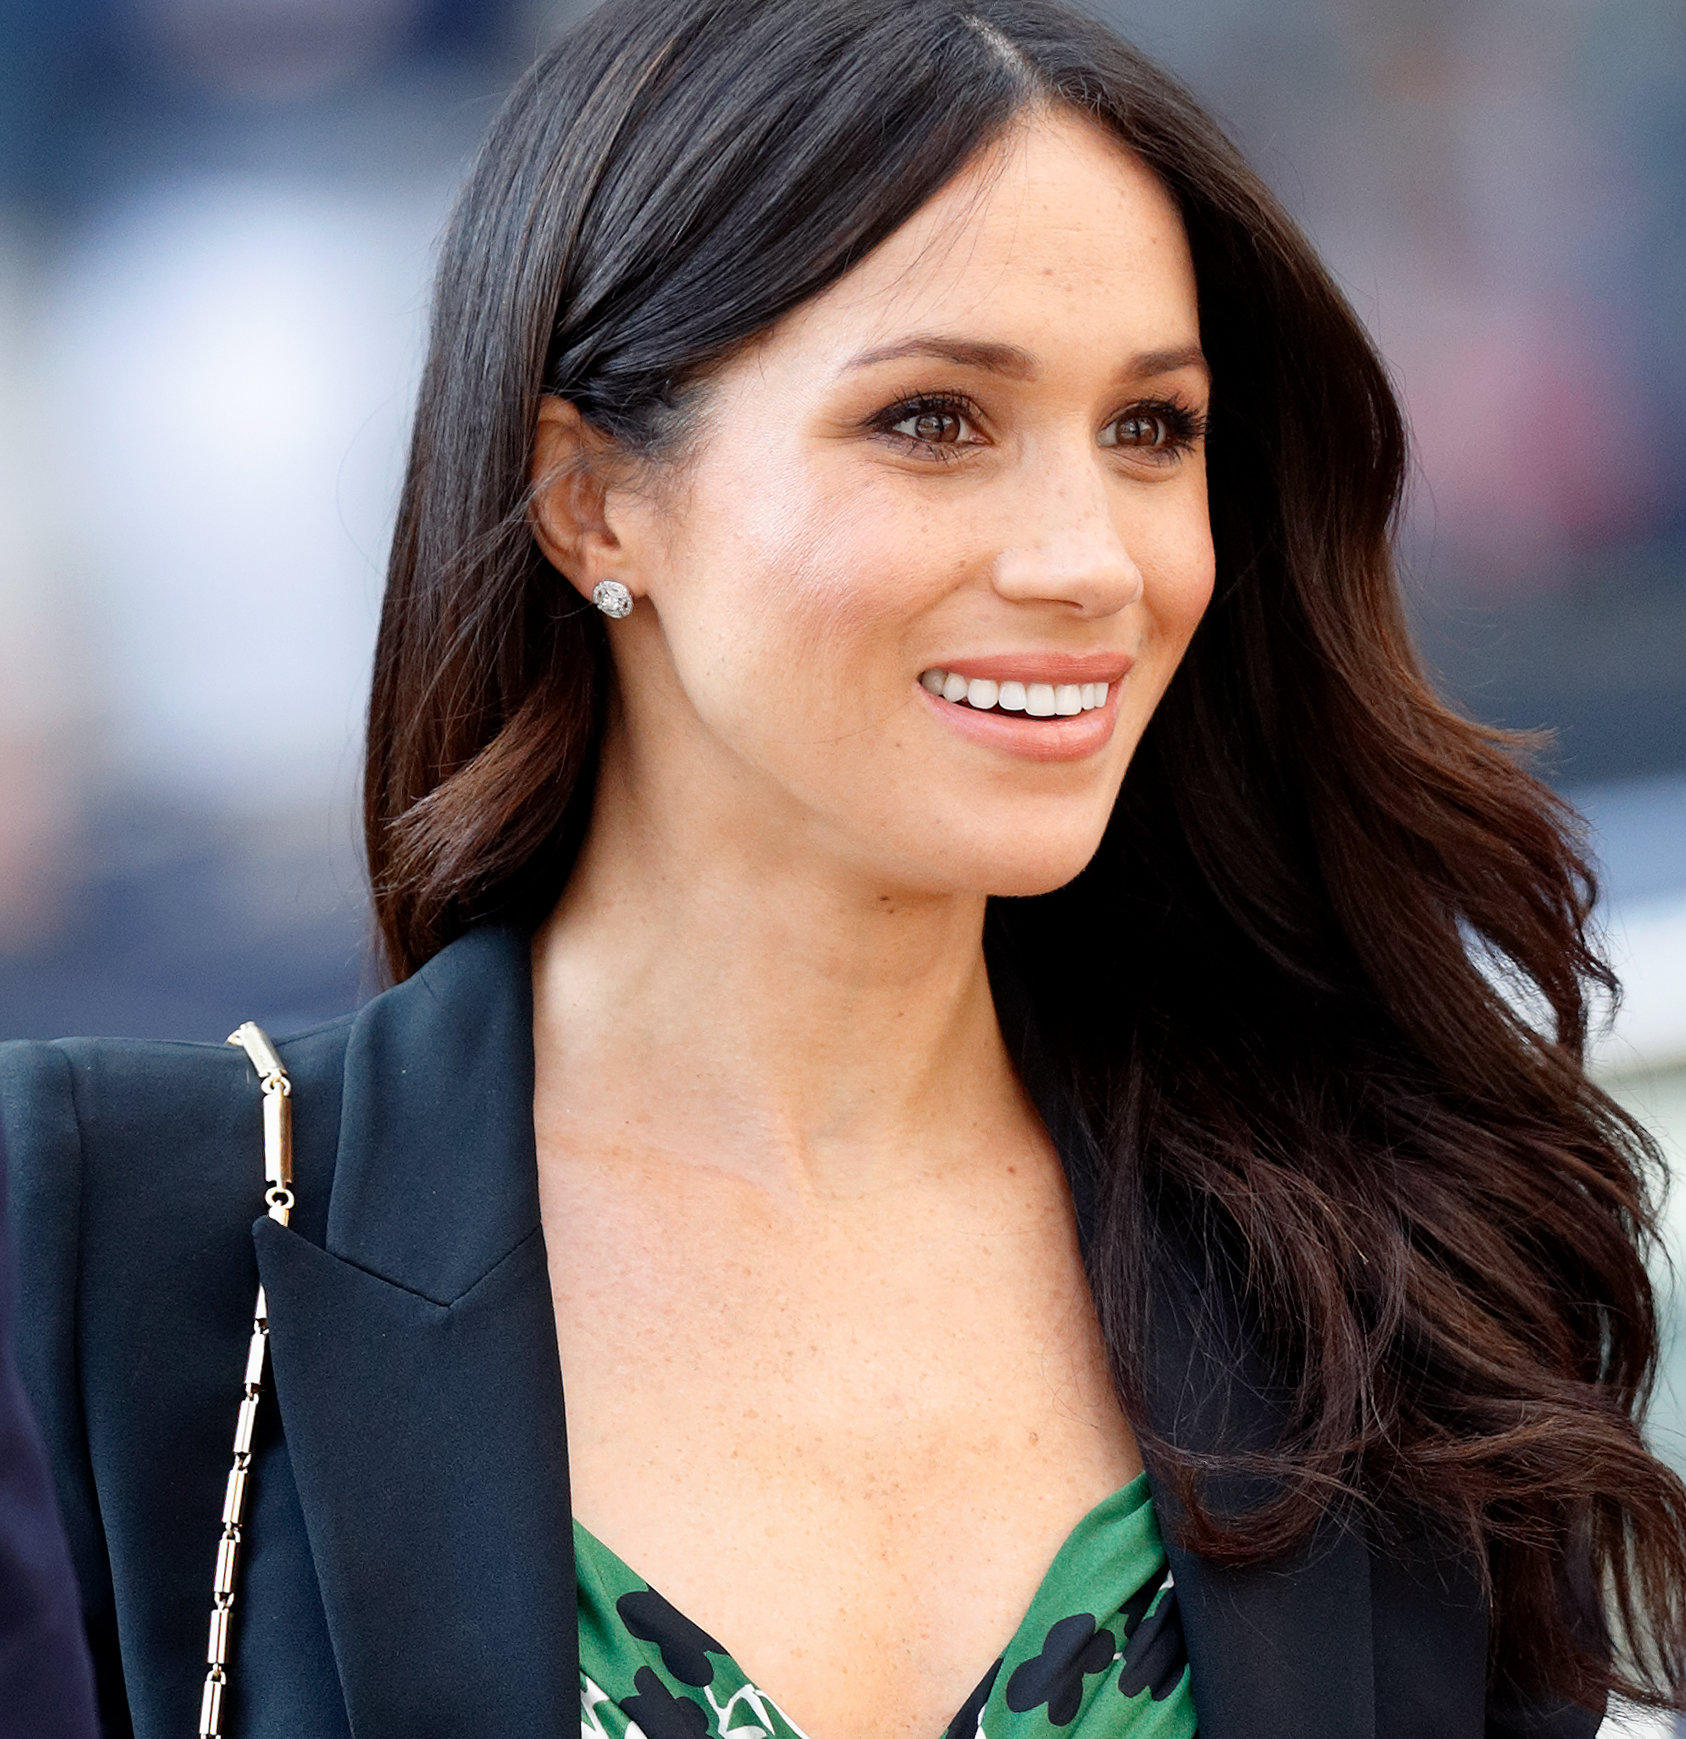 I Took Meghan Markle S Favorite Hot Yoga Class And I Could Barely Keep Up Even Though I M A Former Dancer Real Simple Meghan markle (born rachel megan markle) is an american fashion model, spokesmodel, and actress from los angeles, california. https www realsimple com work life entertainment meghan markle hot yoga studio